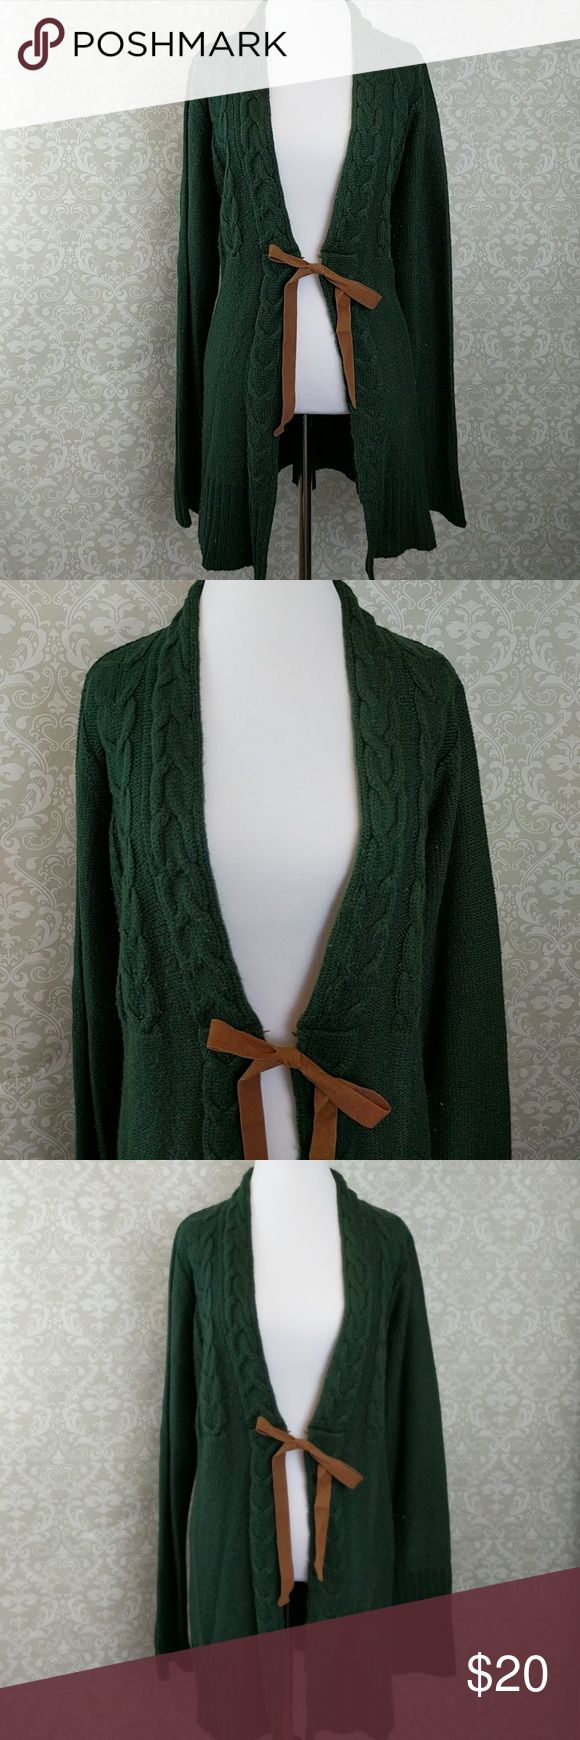 Perfect Green Sweater I love this sweater! I just don't work a job that would allow me to wear it, so it has sat in my closet unloved for too long! This sweater is perfect for fall in winter. It's the perfect shade of green. It has brown faux suede ties in the front. Fits slightly small and is in good condition. If you have any questions please leave a comment. Maurices Sweaters